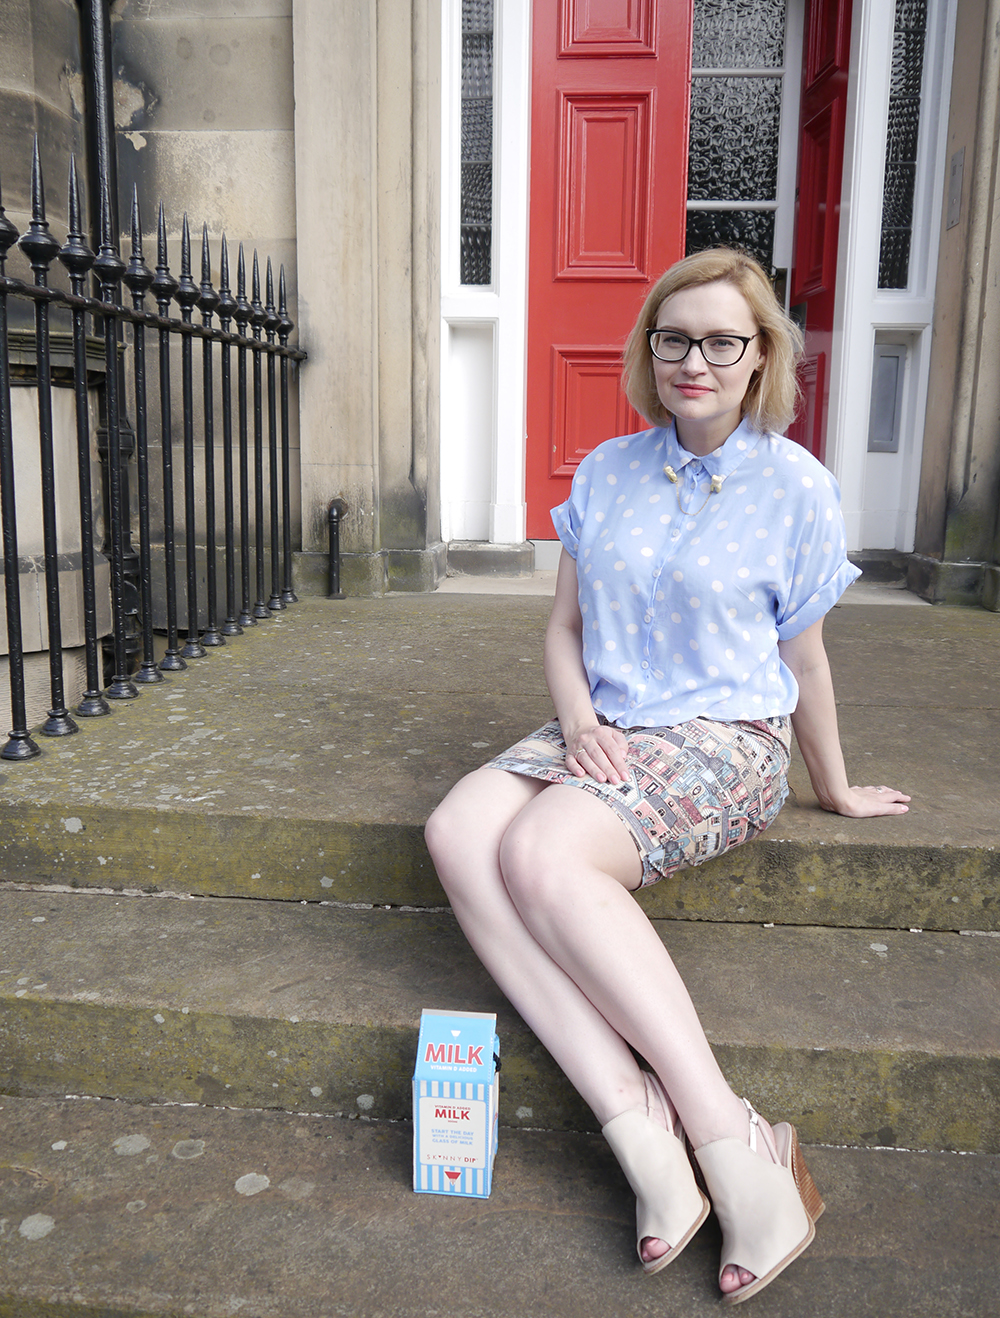 Scottish blogger, edinburgh georgian house, victorian building edinburgh, Scotland summer style, Edinburgh blogger, Scottish street style, quirky street style, dressing to a theme, food inspired outfit, pale girl style,